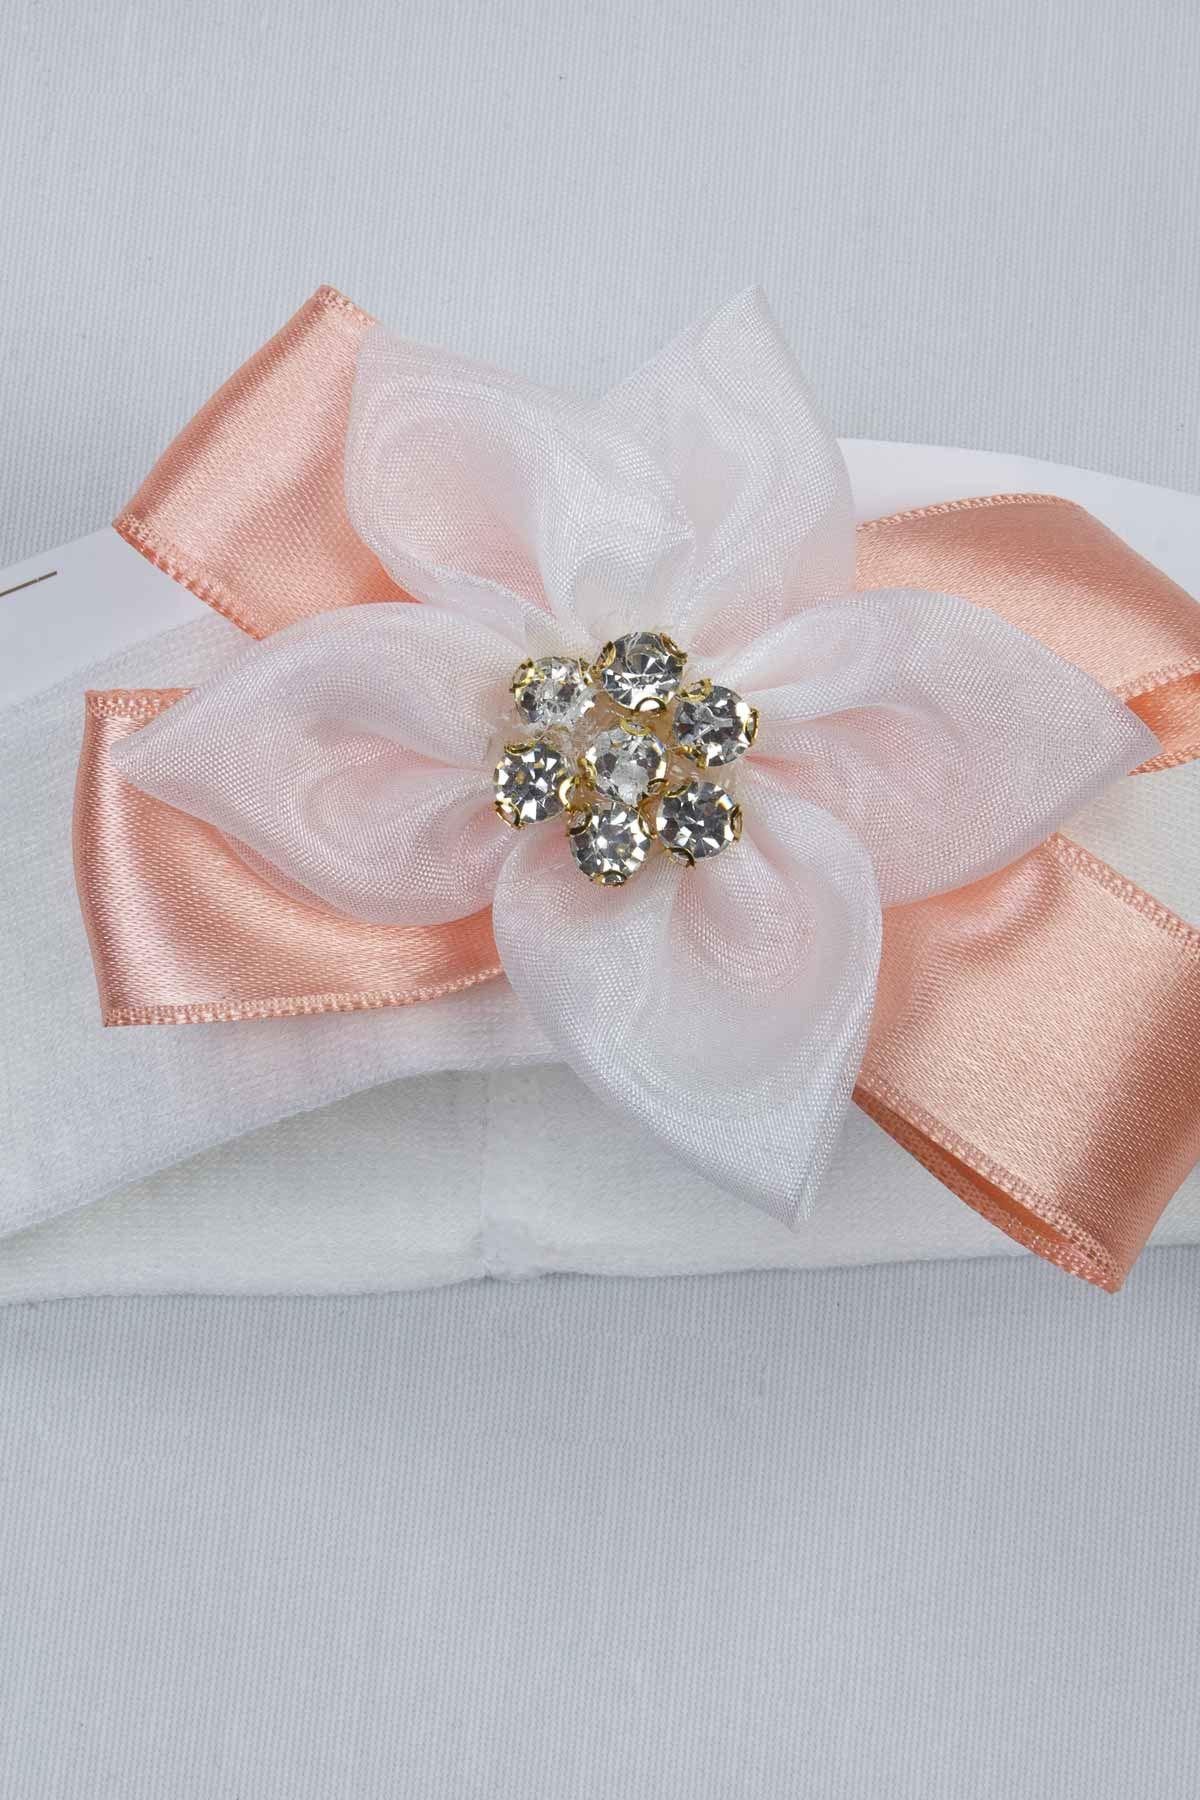 Powder Puerperal Crown Slippers and Baby Booties Bandana Set